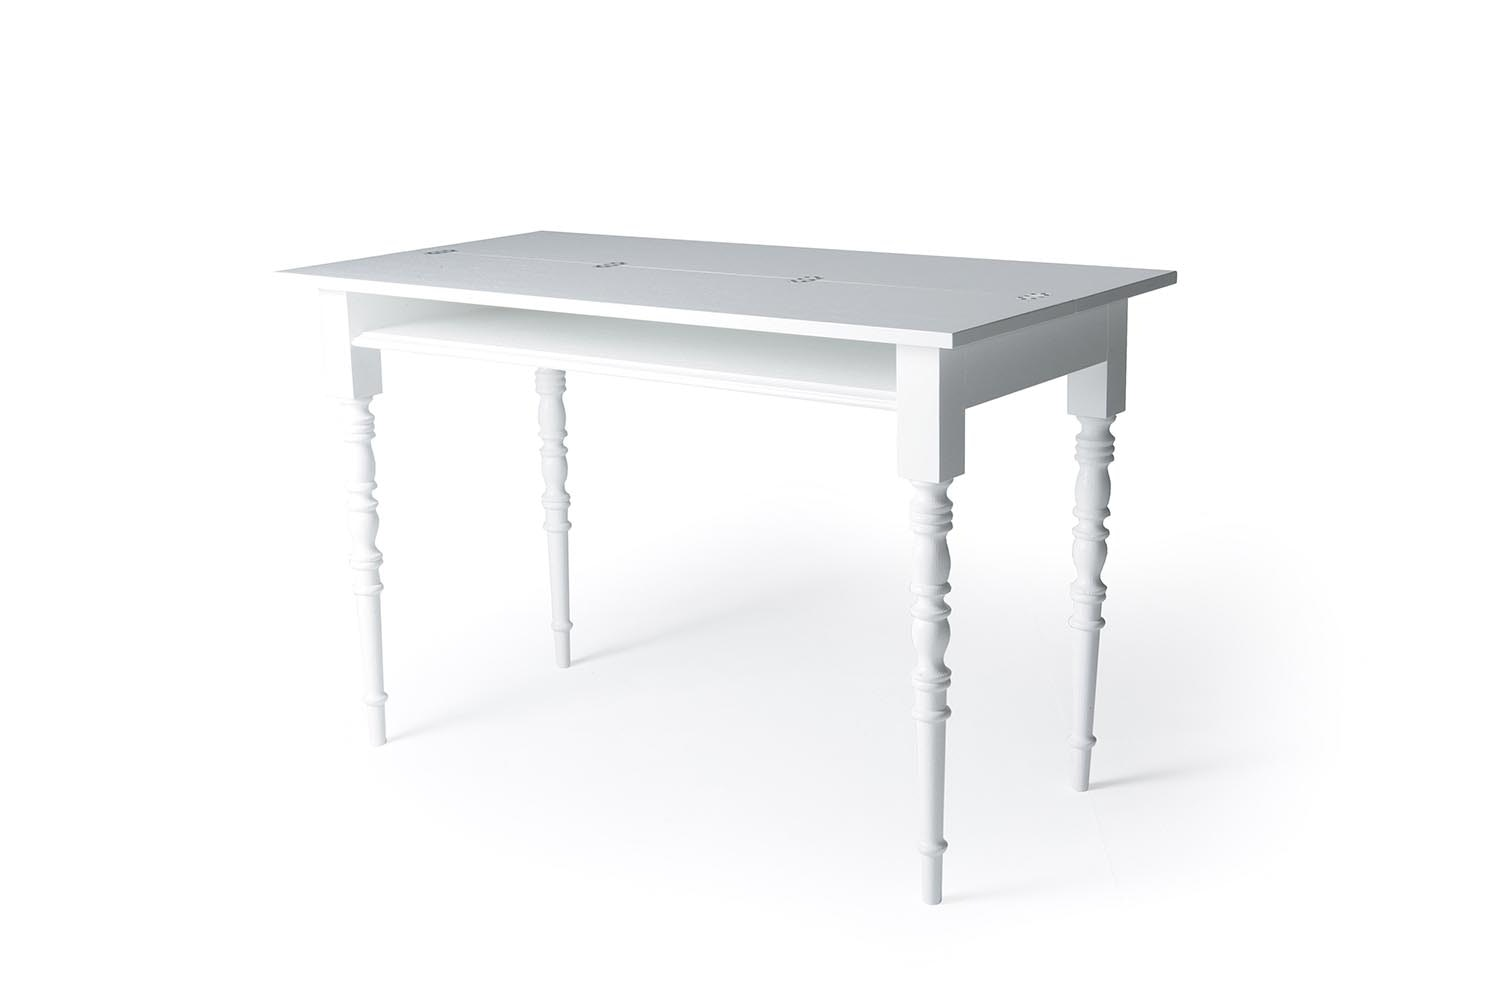 Two Tops Secretary Desk by Marcel Wanders for Moooi